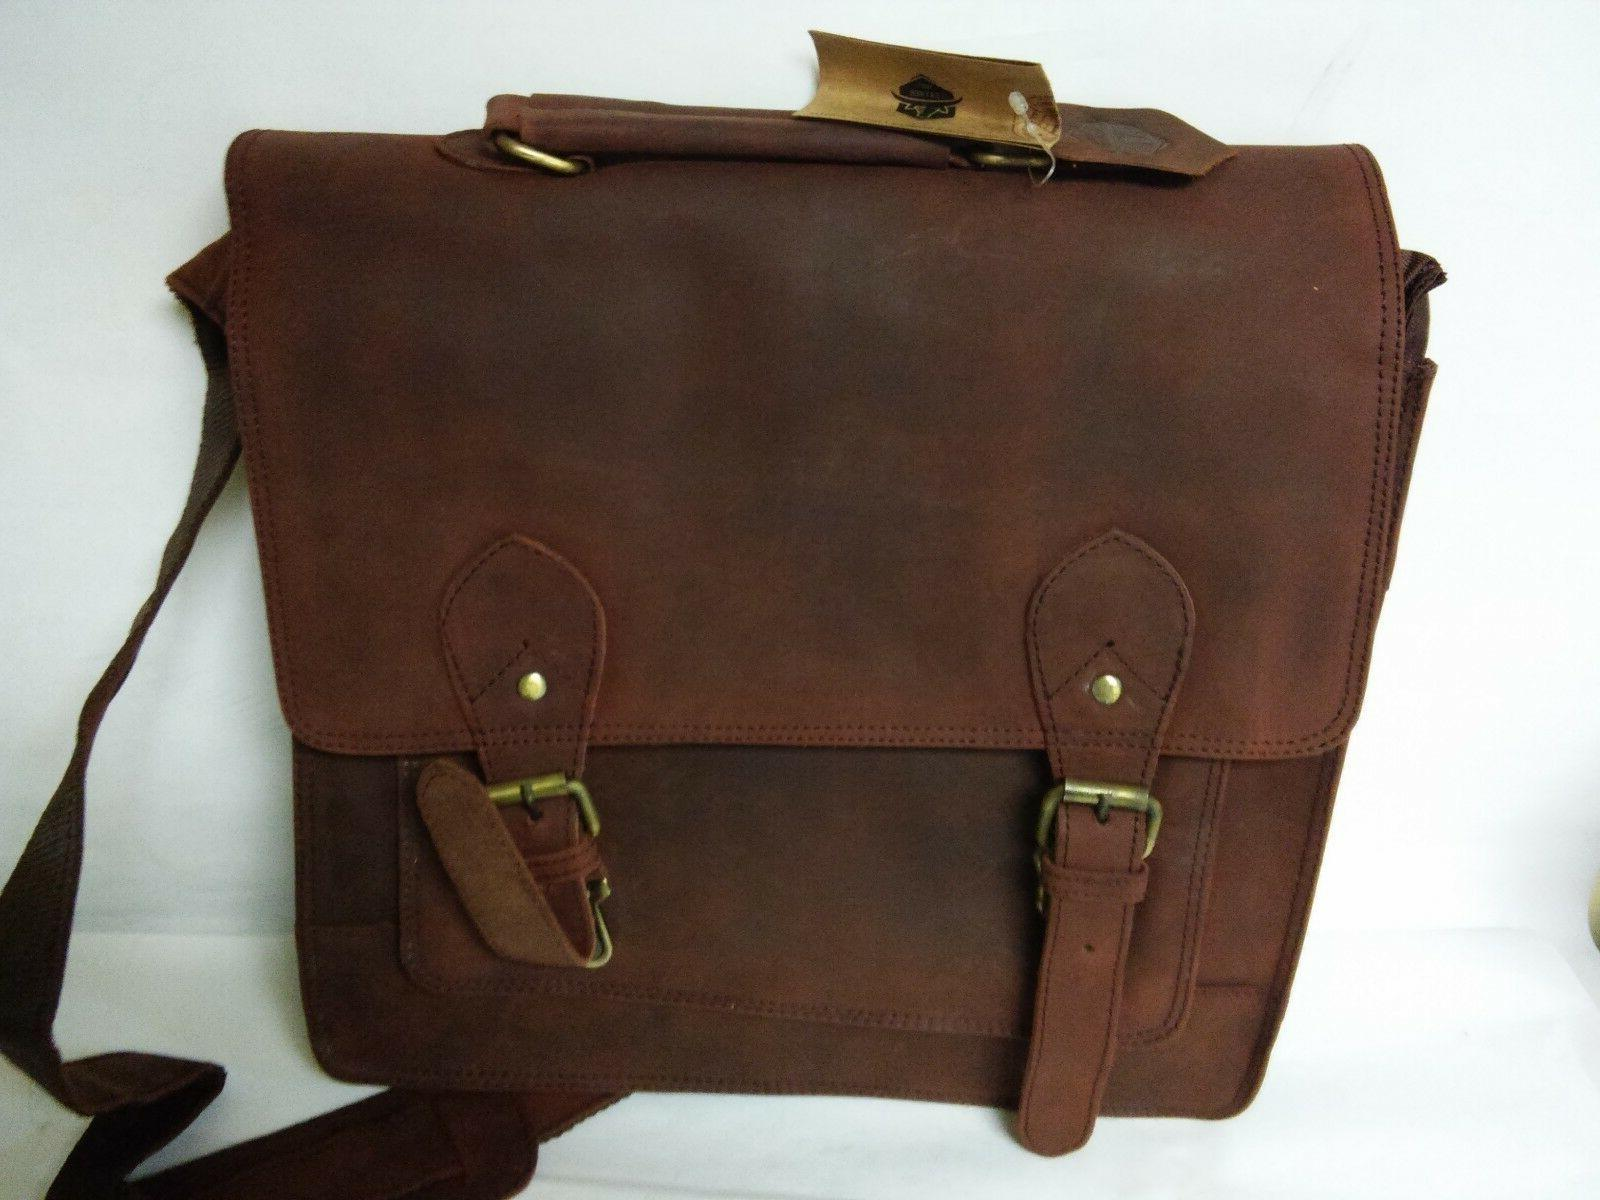 feathertouch leather camera dslr travel camera bag